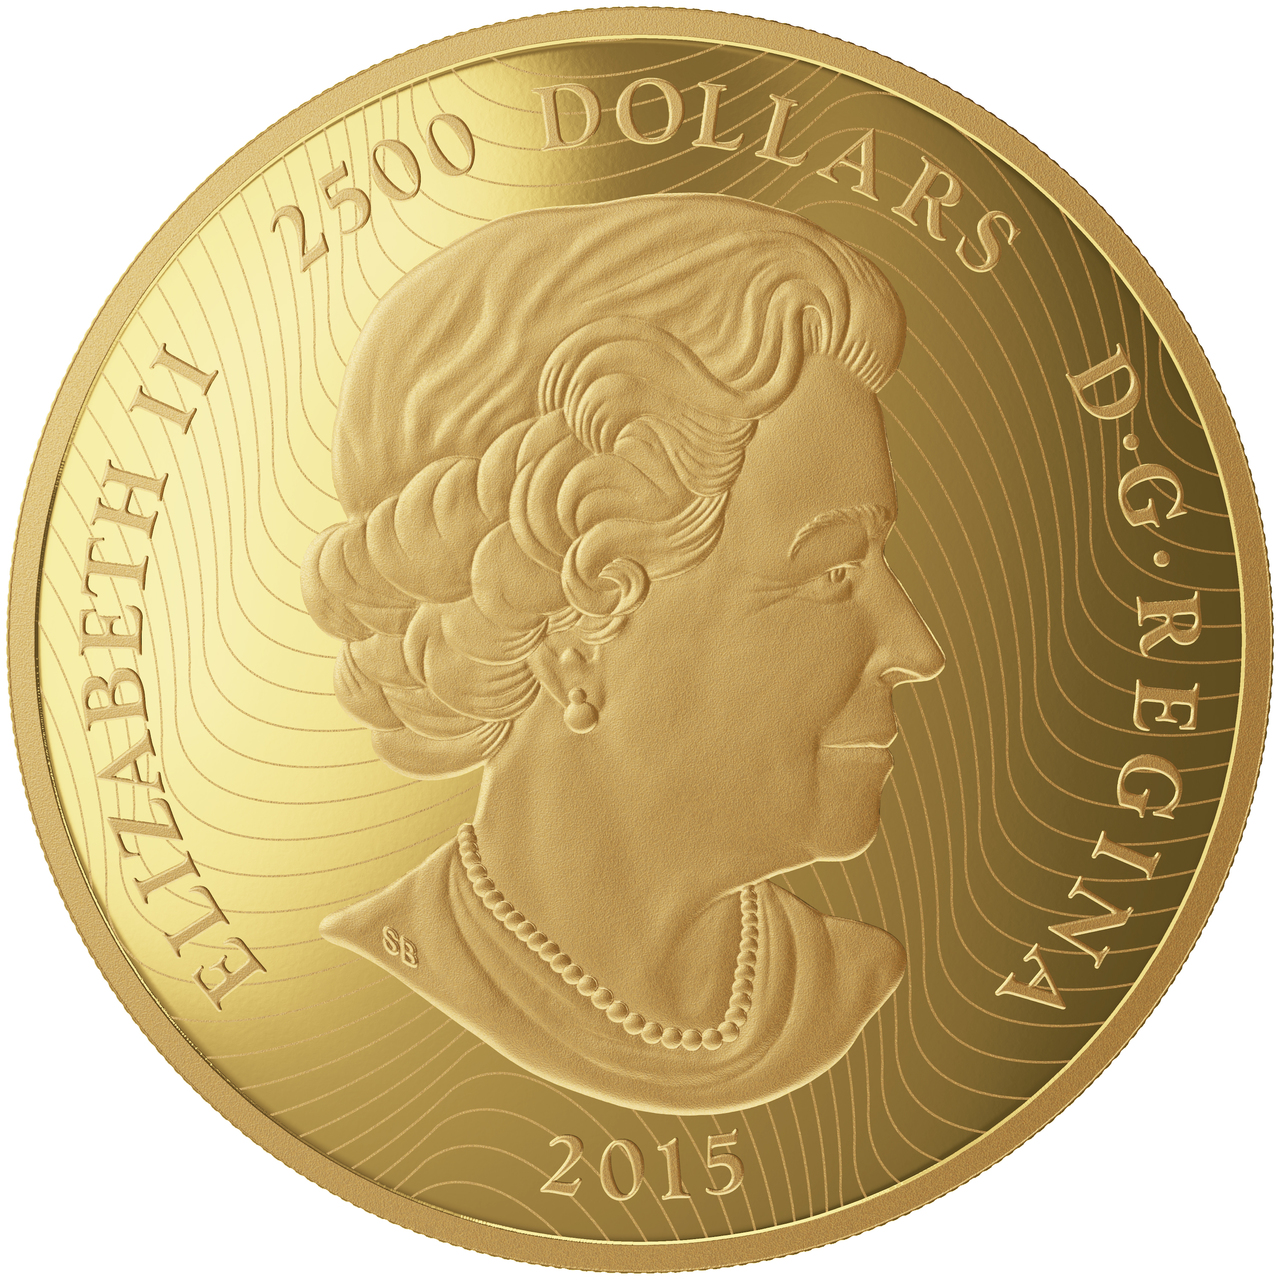 2015 2500 1 Kilo Pure Gold Coin Maple Leaf Forever